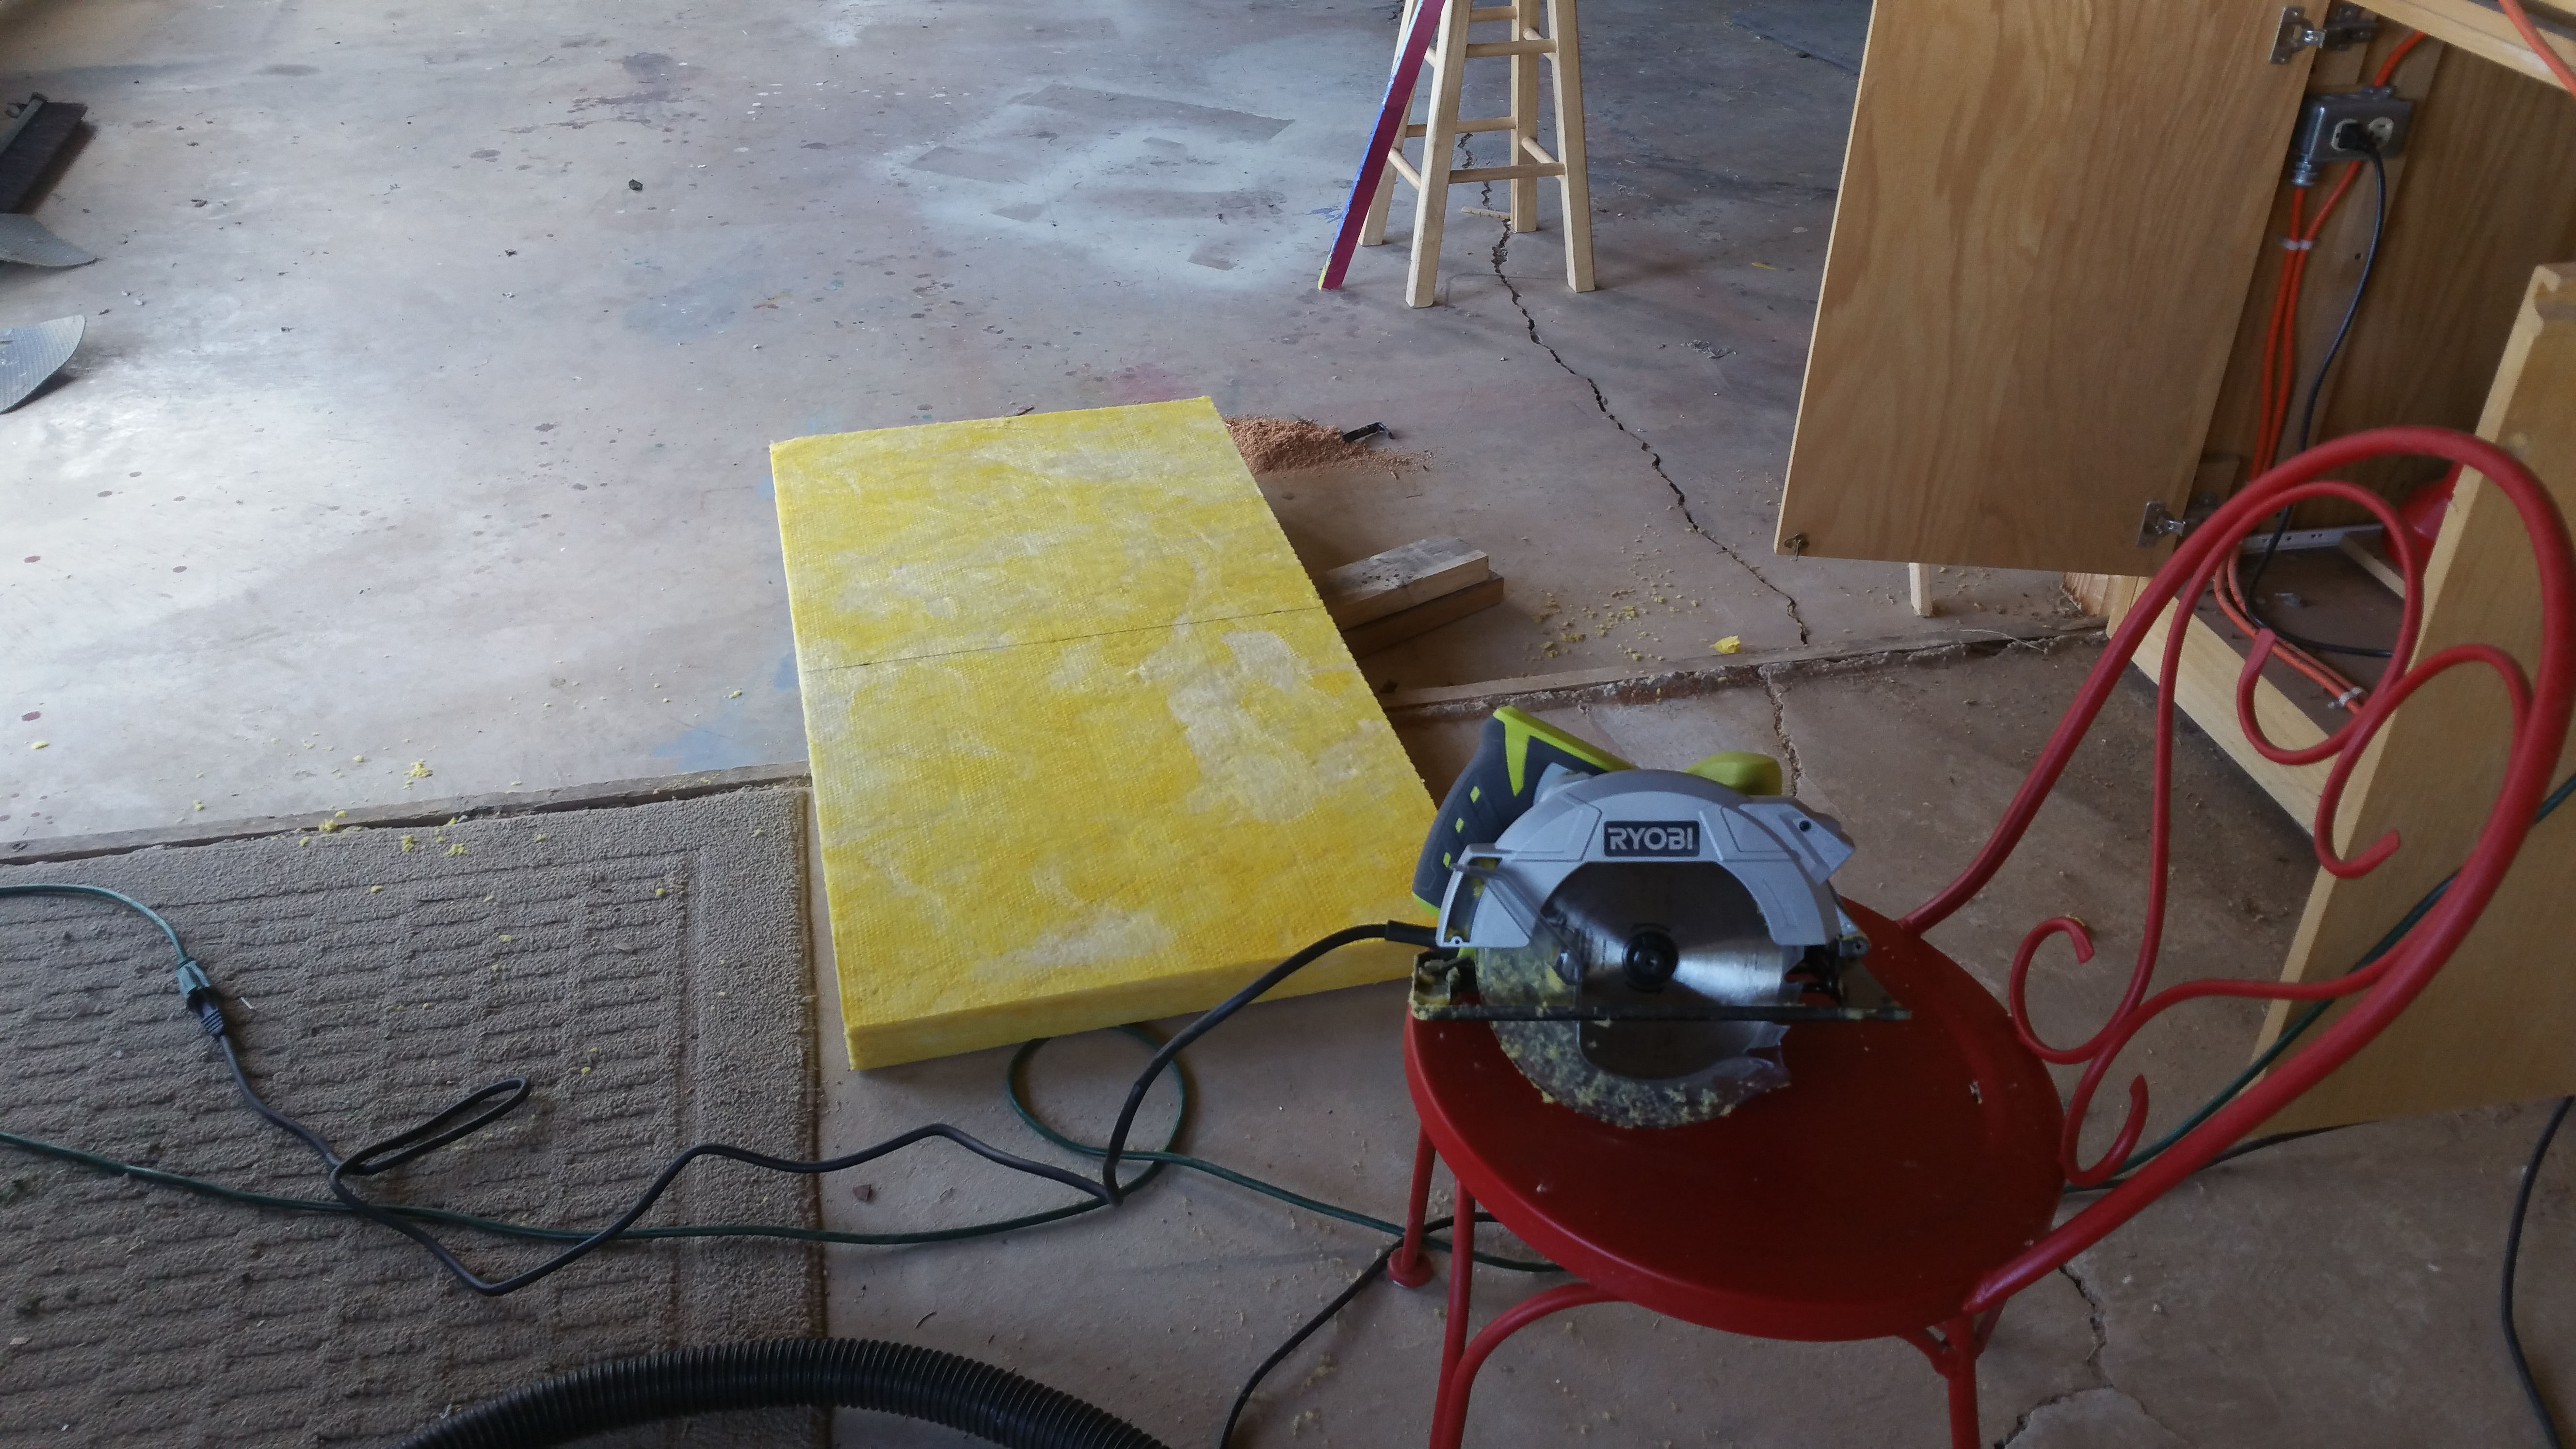 Making acoustic tiles for the music room | My Traveling Family